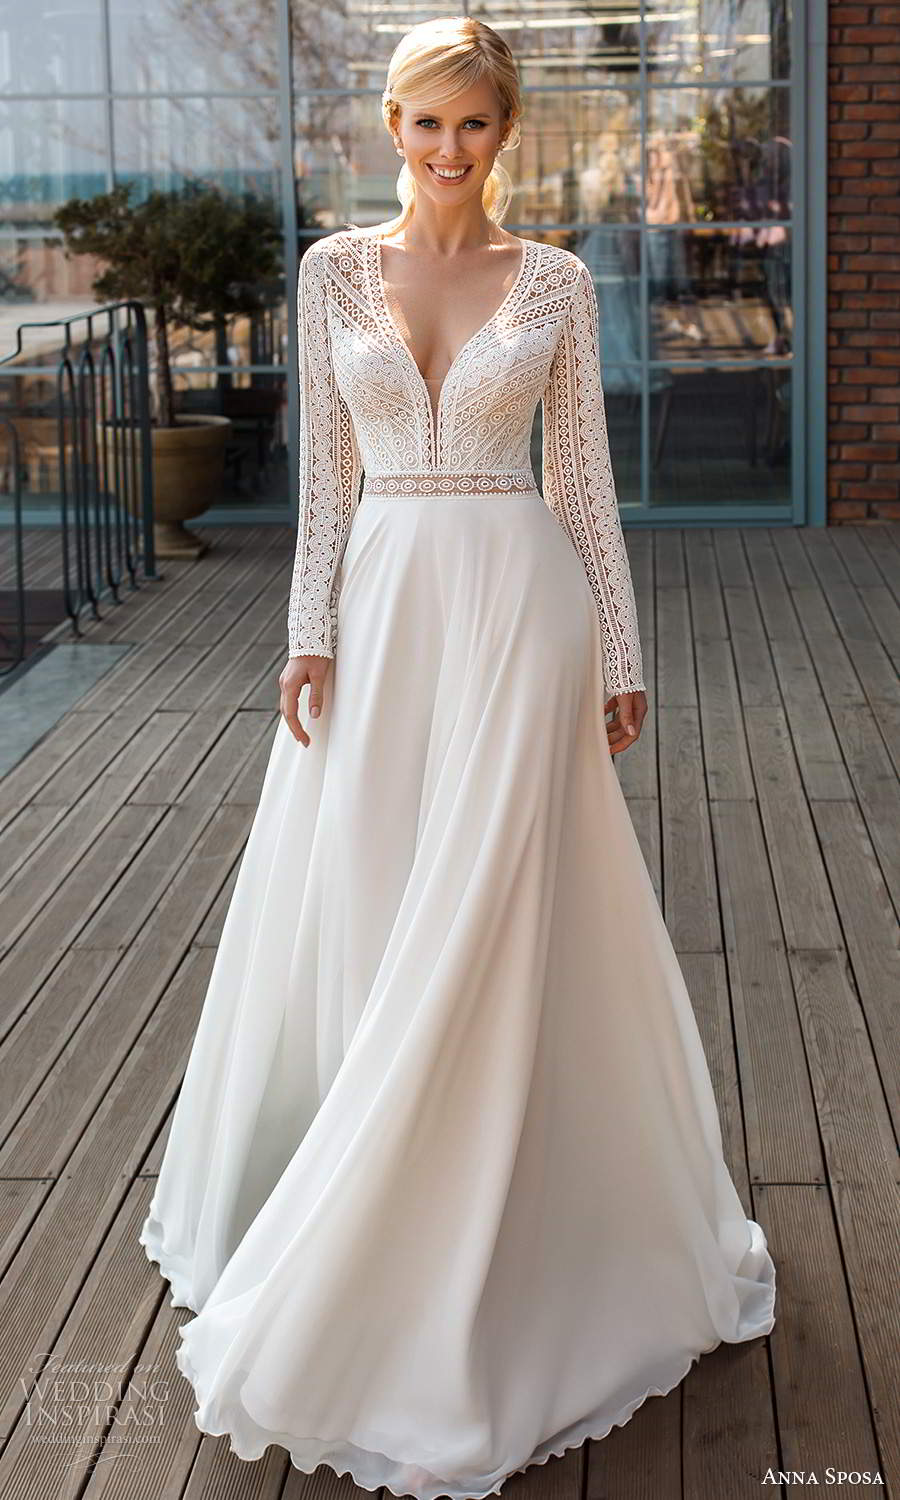 anna sposa 2021 boho bridal long sleeves plunging v neckline embellished lace bodice clean skirt a line ball gown wedding dress chapel train (10) mv